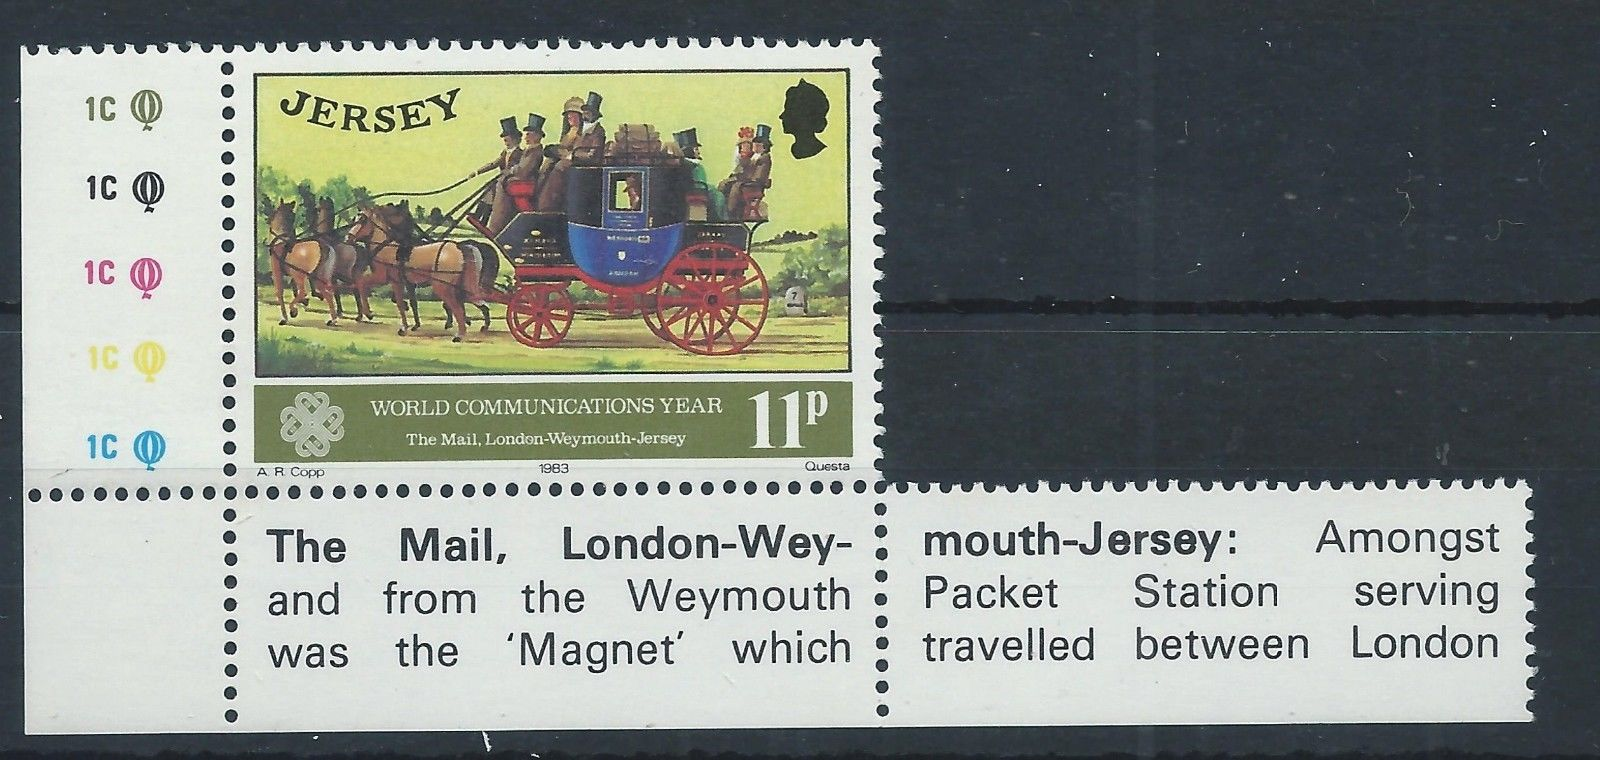 Jersey - Scott #311 (1983) - with partial marginal inscription describing the London-Weymouth-Jersey mail coach service (NIMC2018); image from active eBay auction.